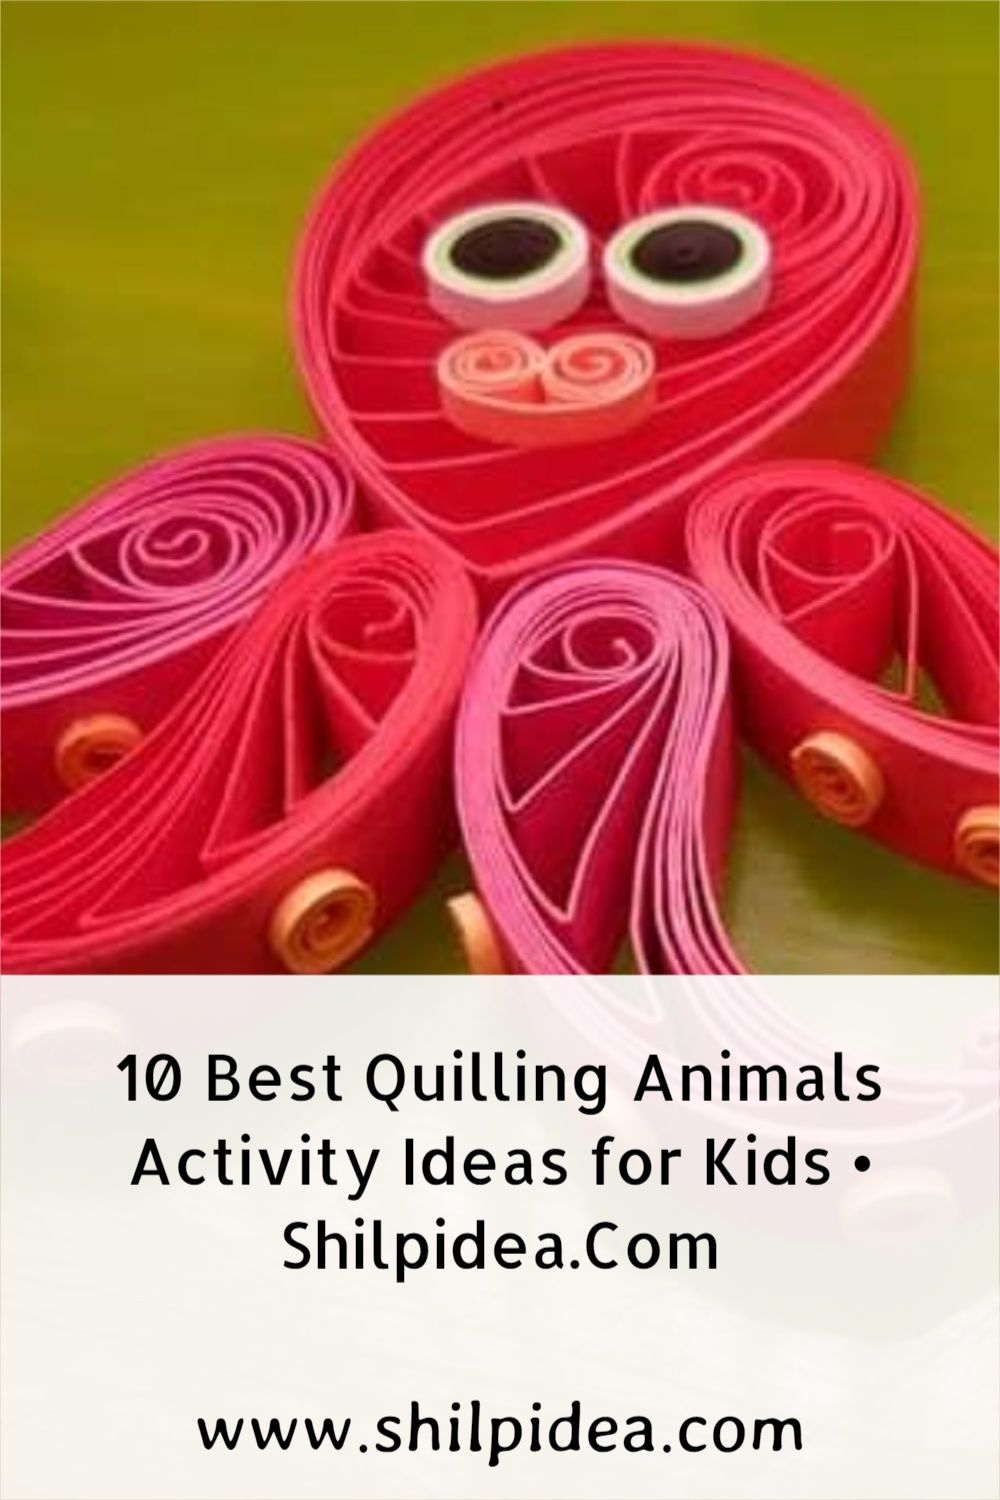 quilling-animals-activity-ideas-shilpidea-pin